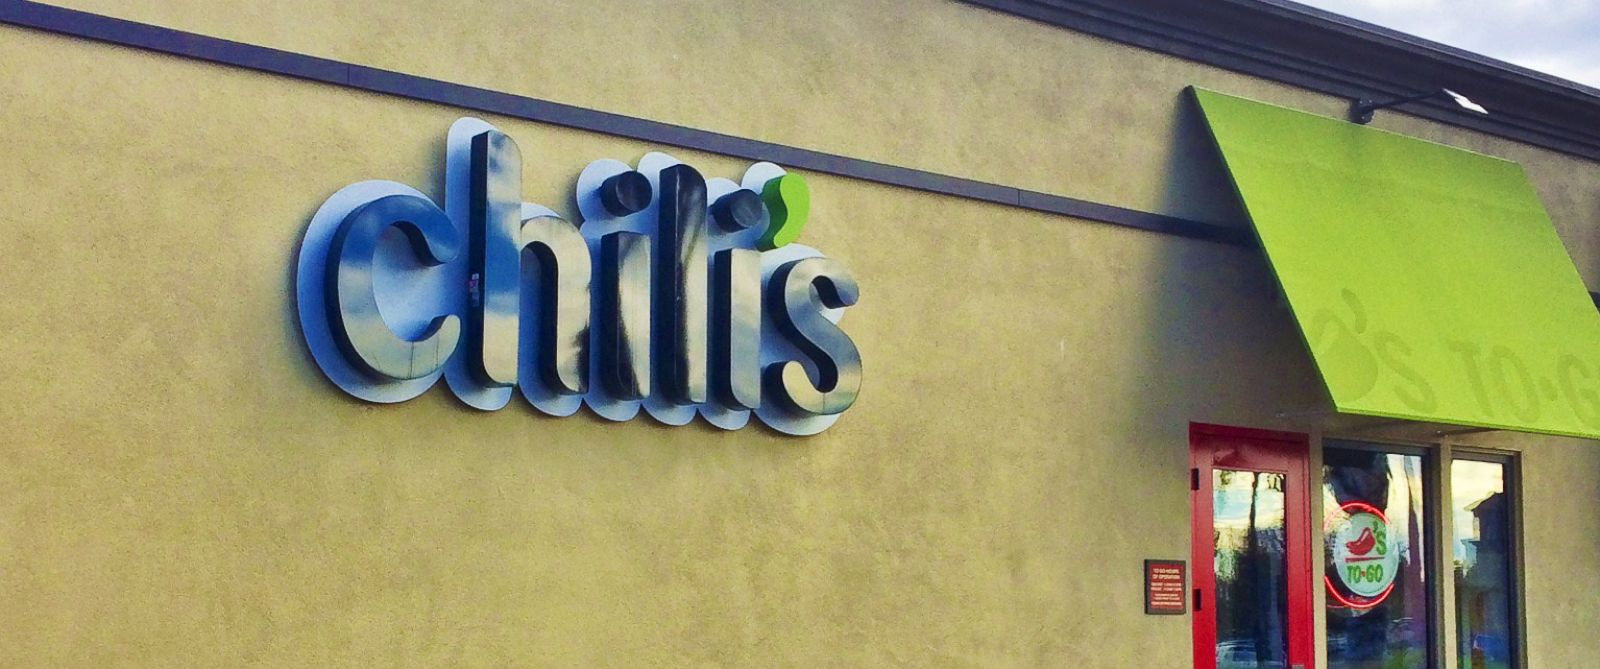 PHOTO: Chilis storefront sign.